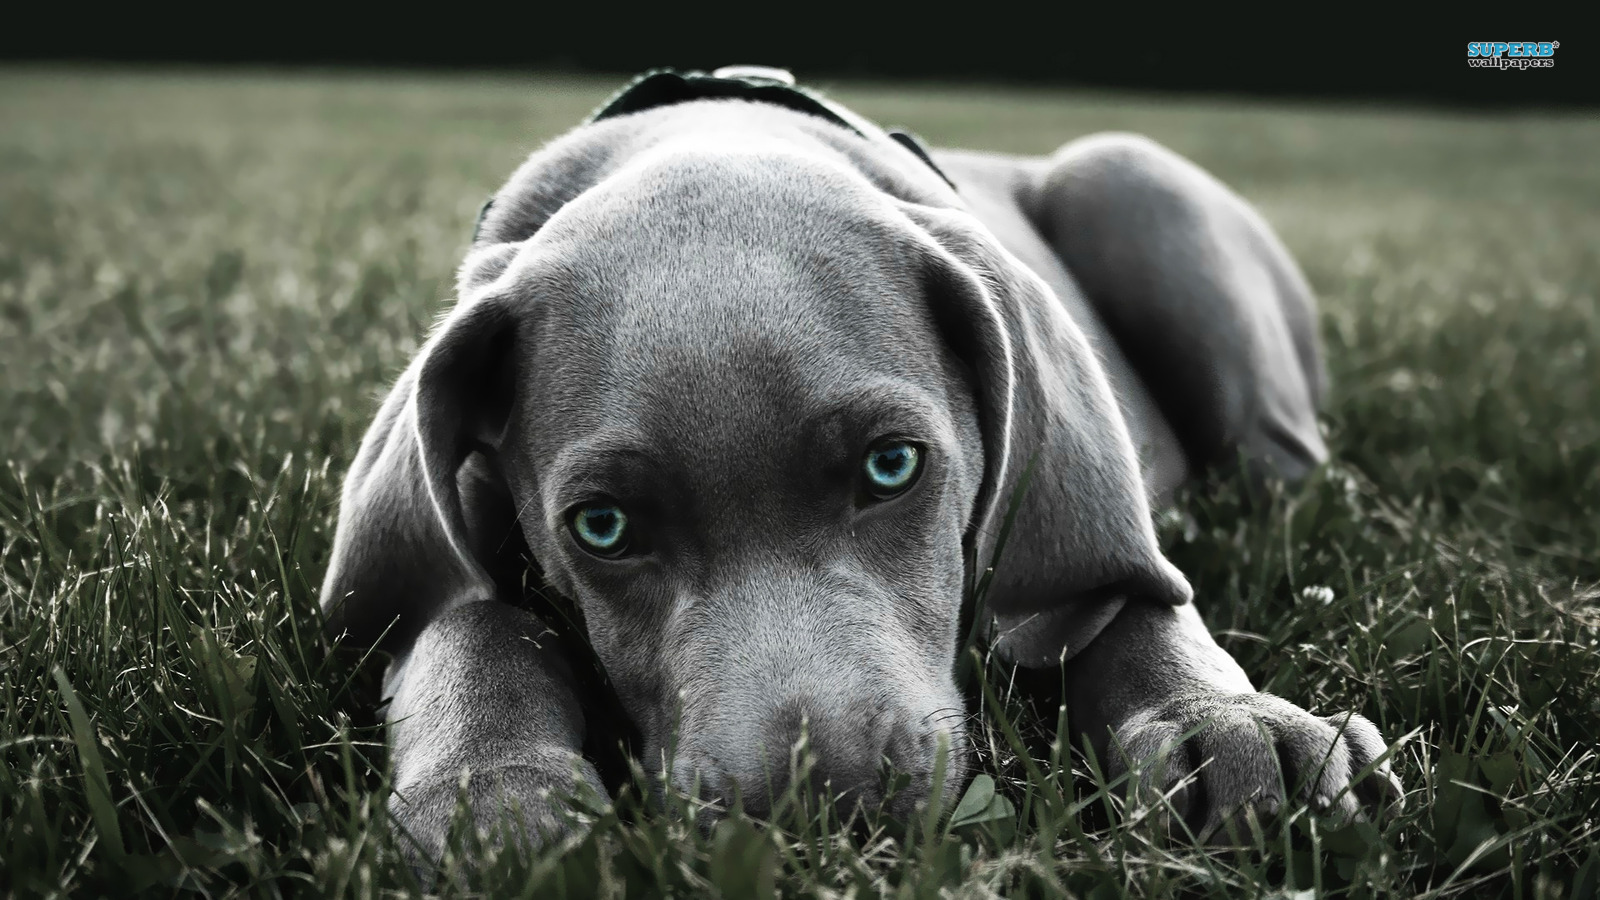 Weimaraner - Dogs Wallpaper (38731358) - Fanpop